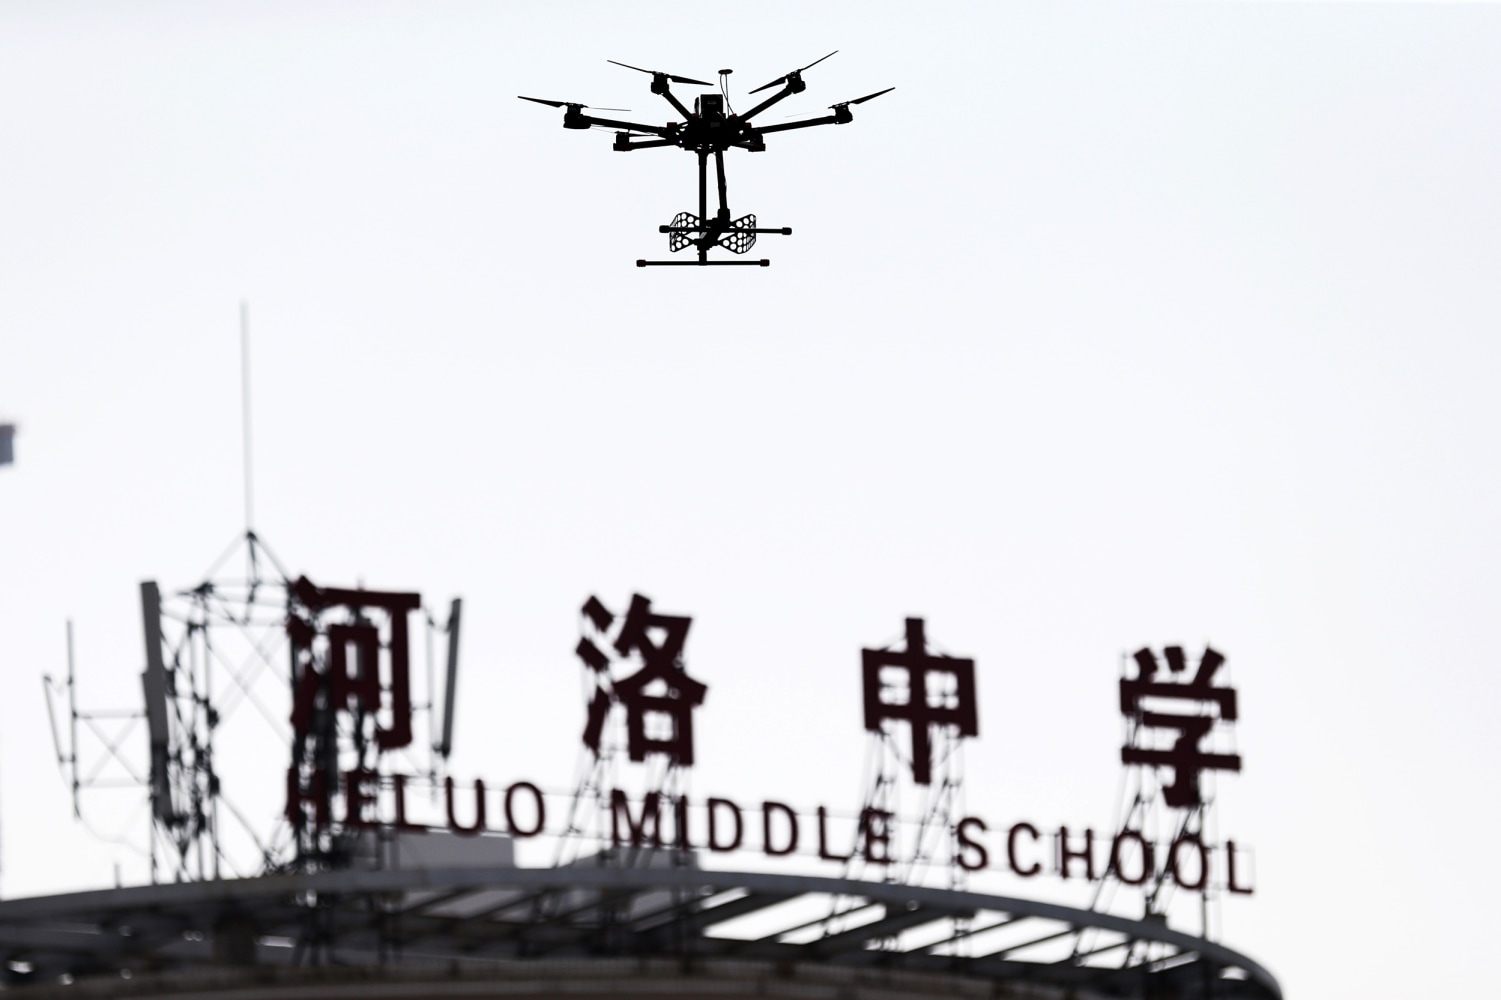 chinese students heading to u s for college face tough transition image entrance exam uses drone to prevent student from cheating